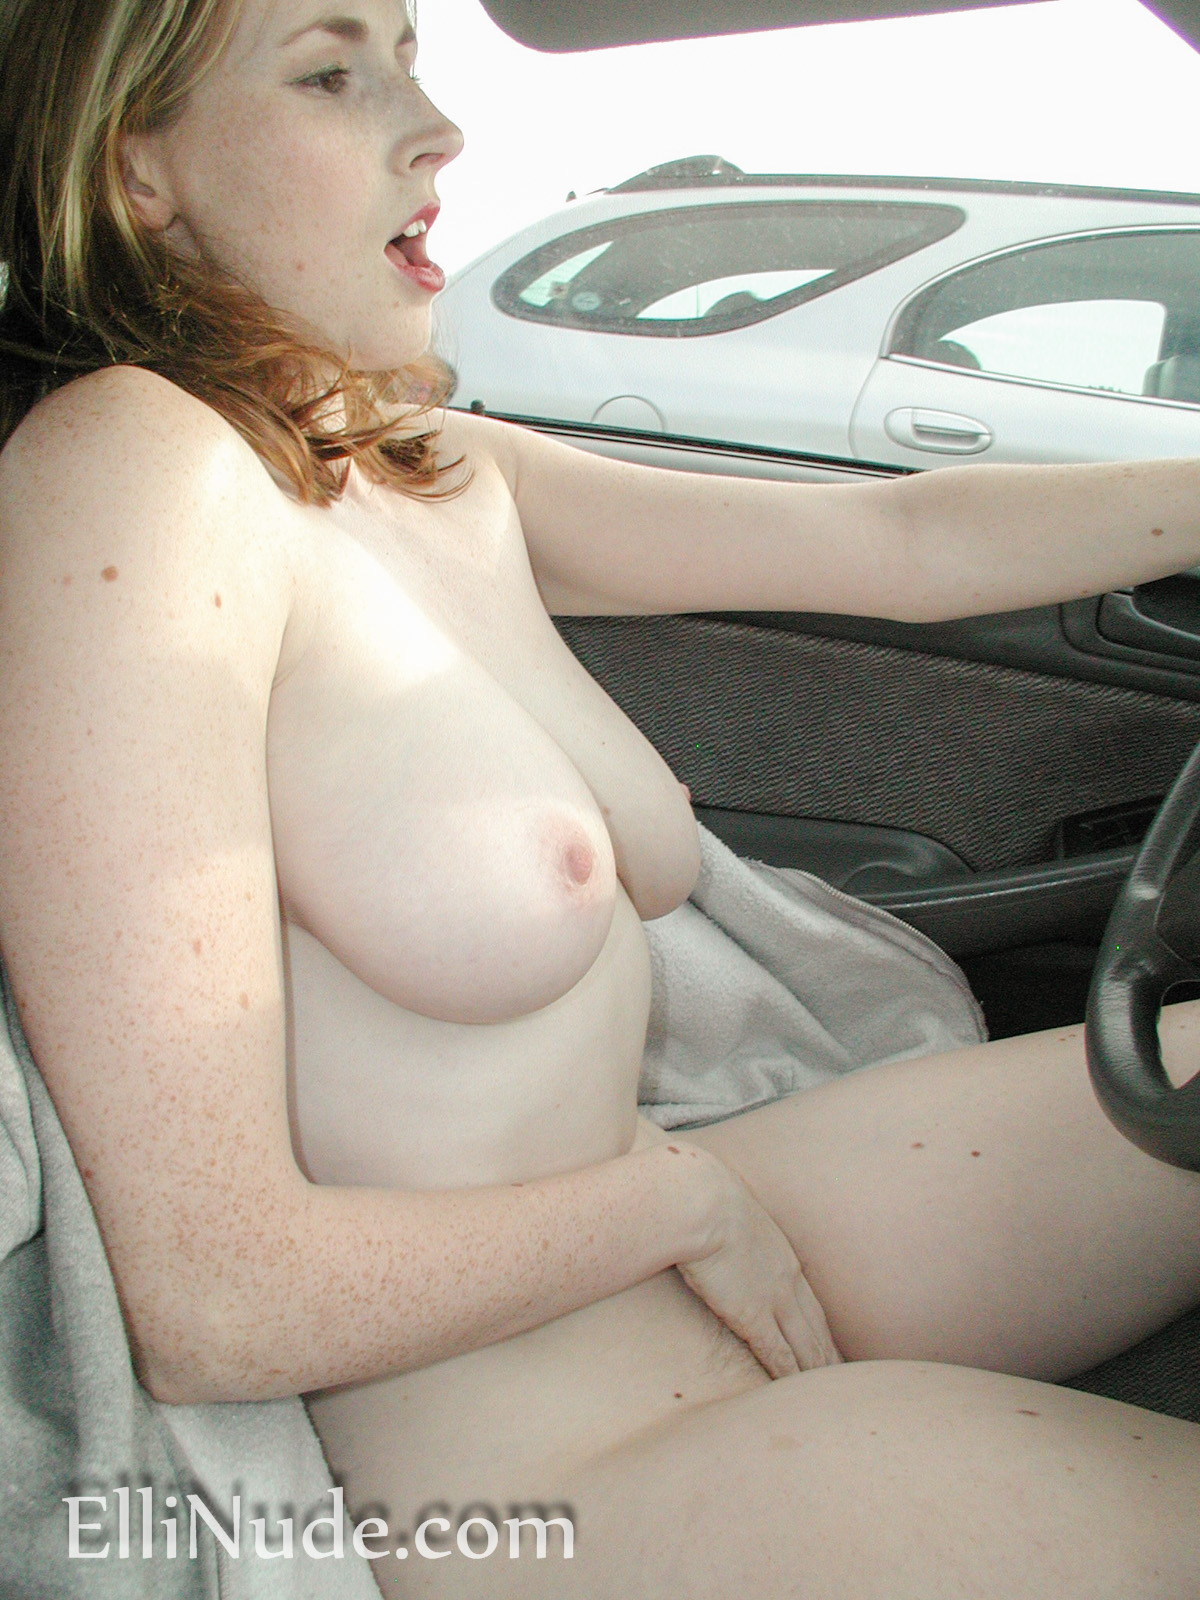 Adult videos nude lady driver